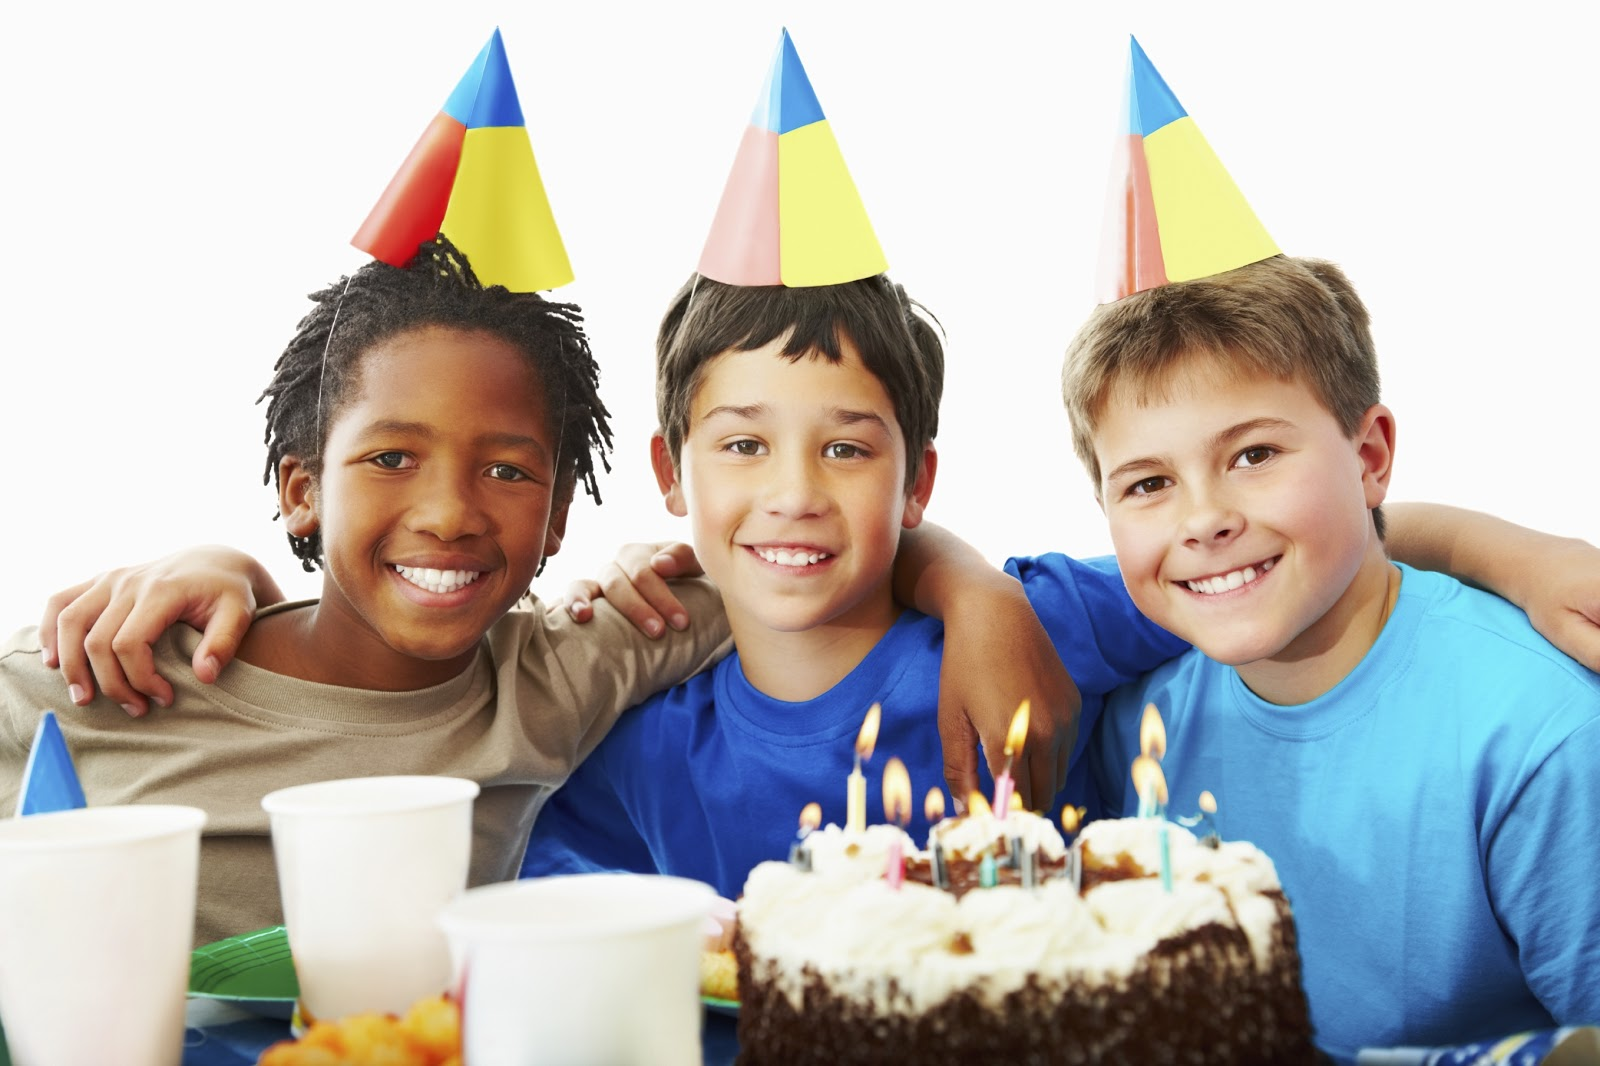 Themes for Boys Birthday Parties: Sports Themes for Boys Birthday ...